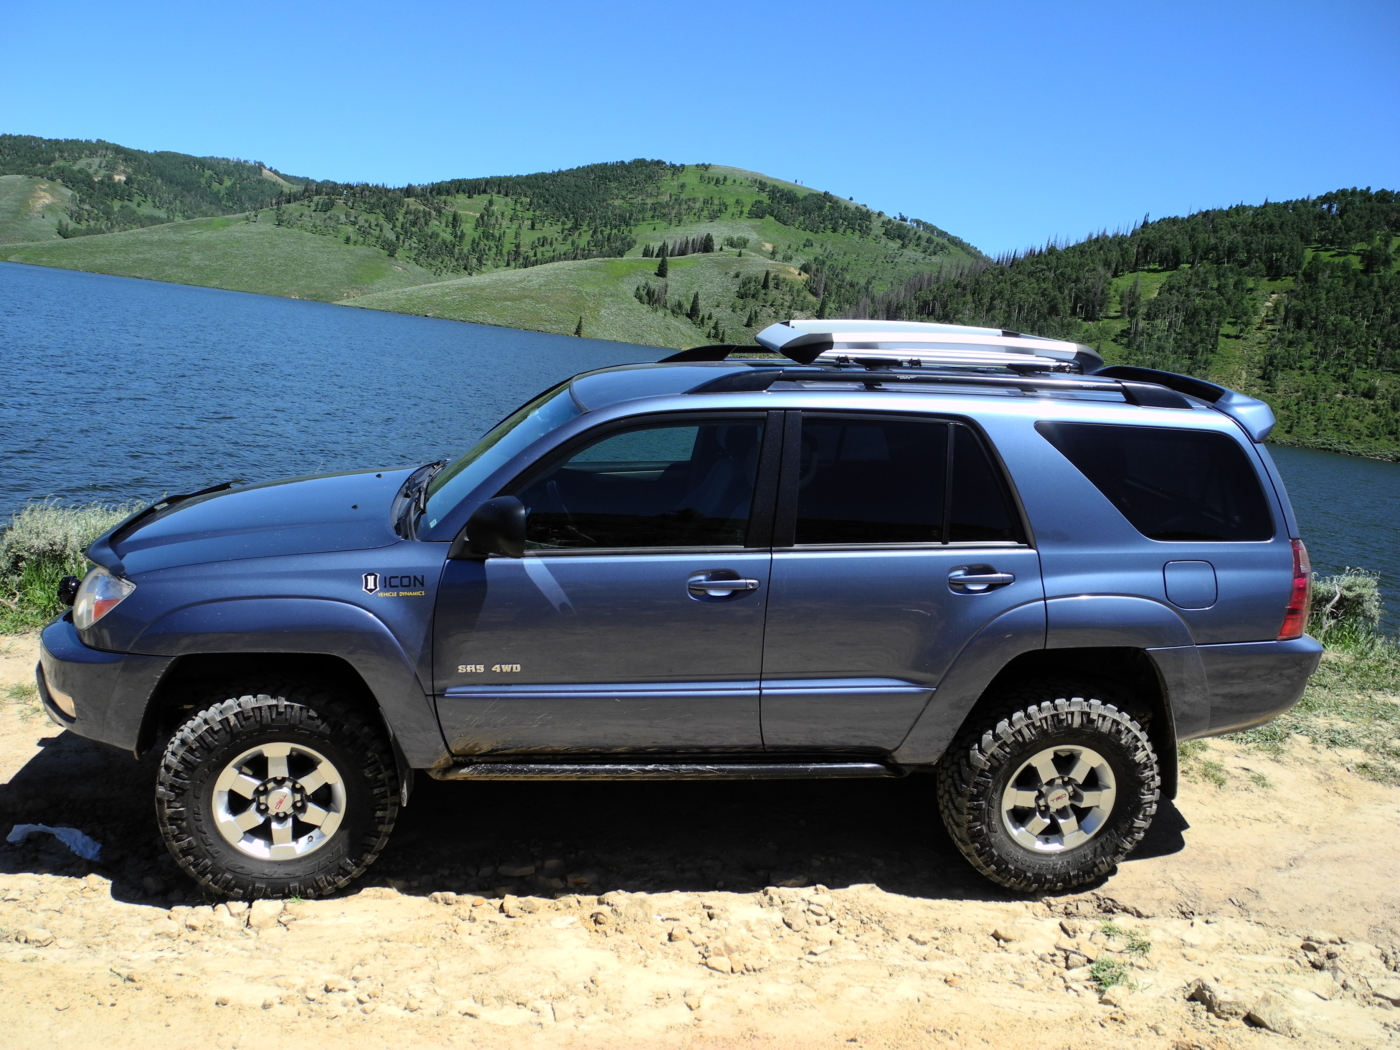 Shane coles 2005 toyota 4runner before recent upgrades